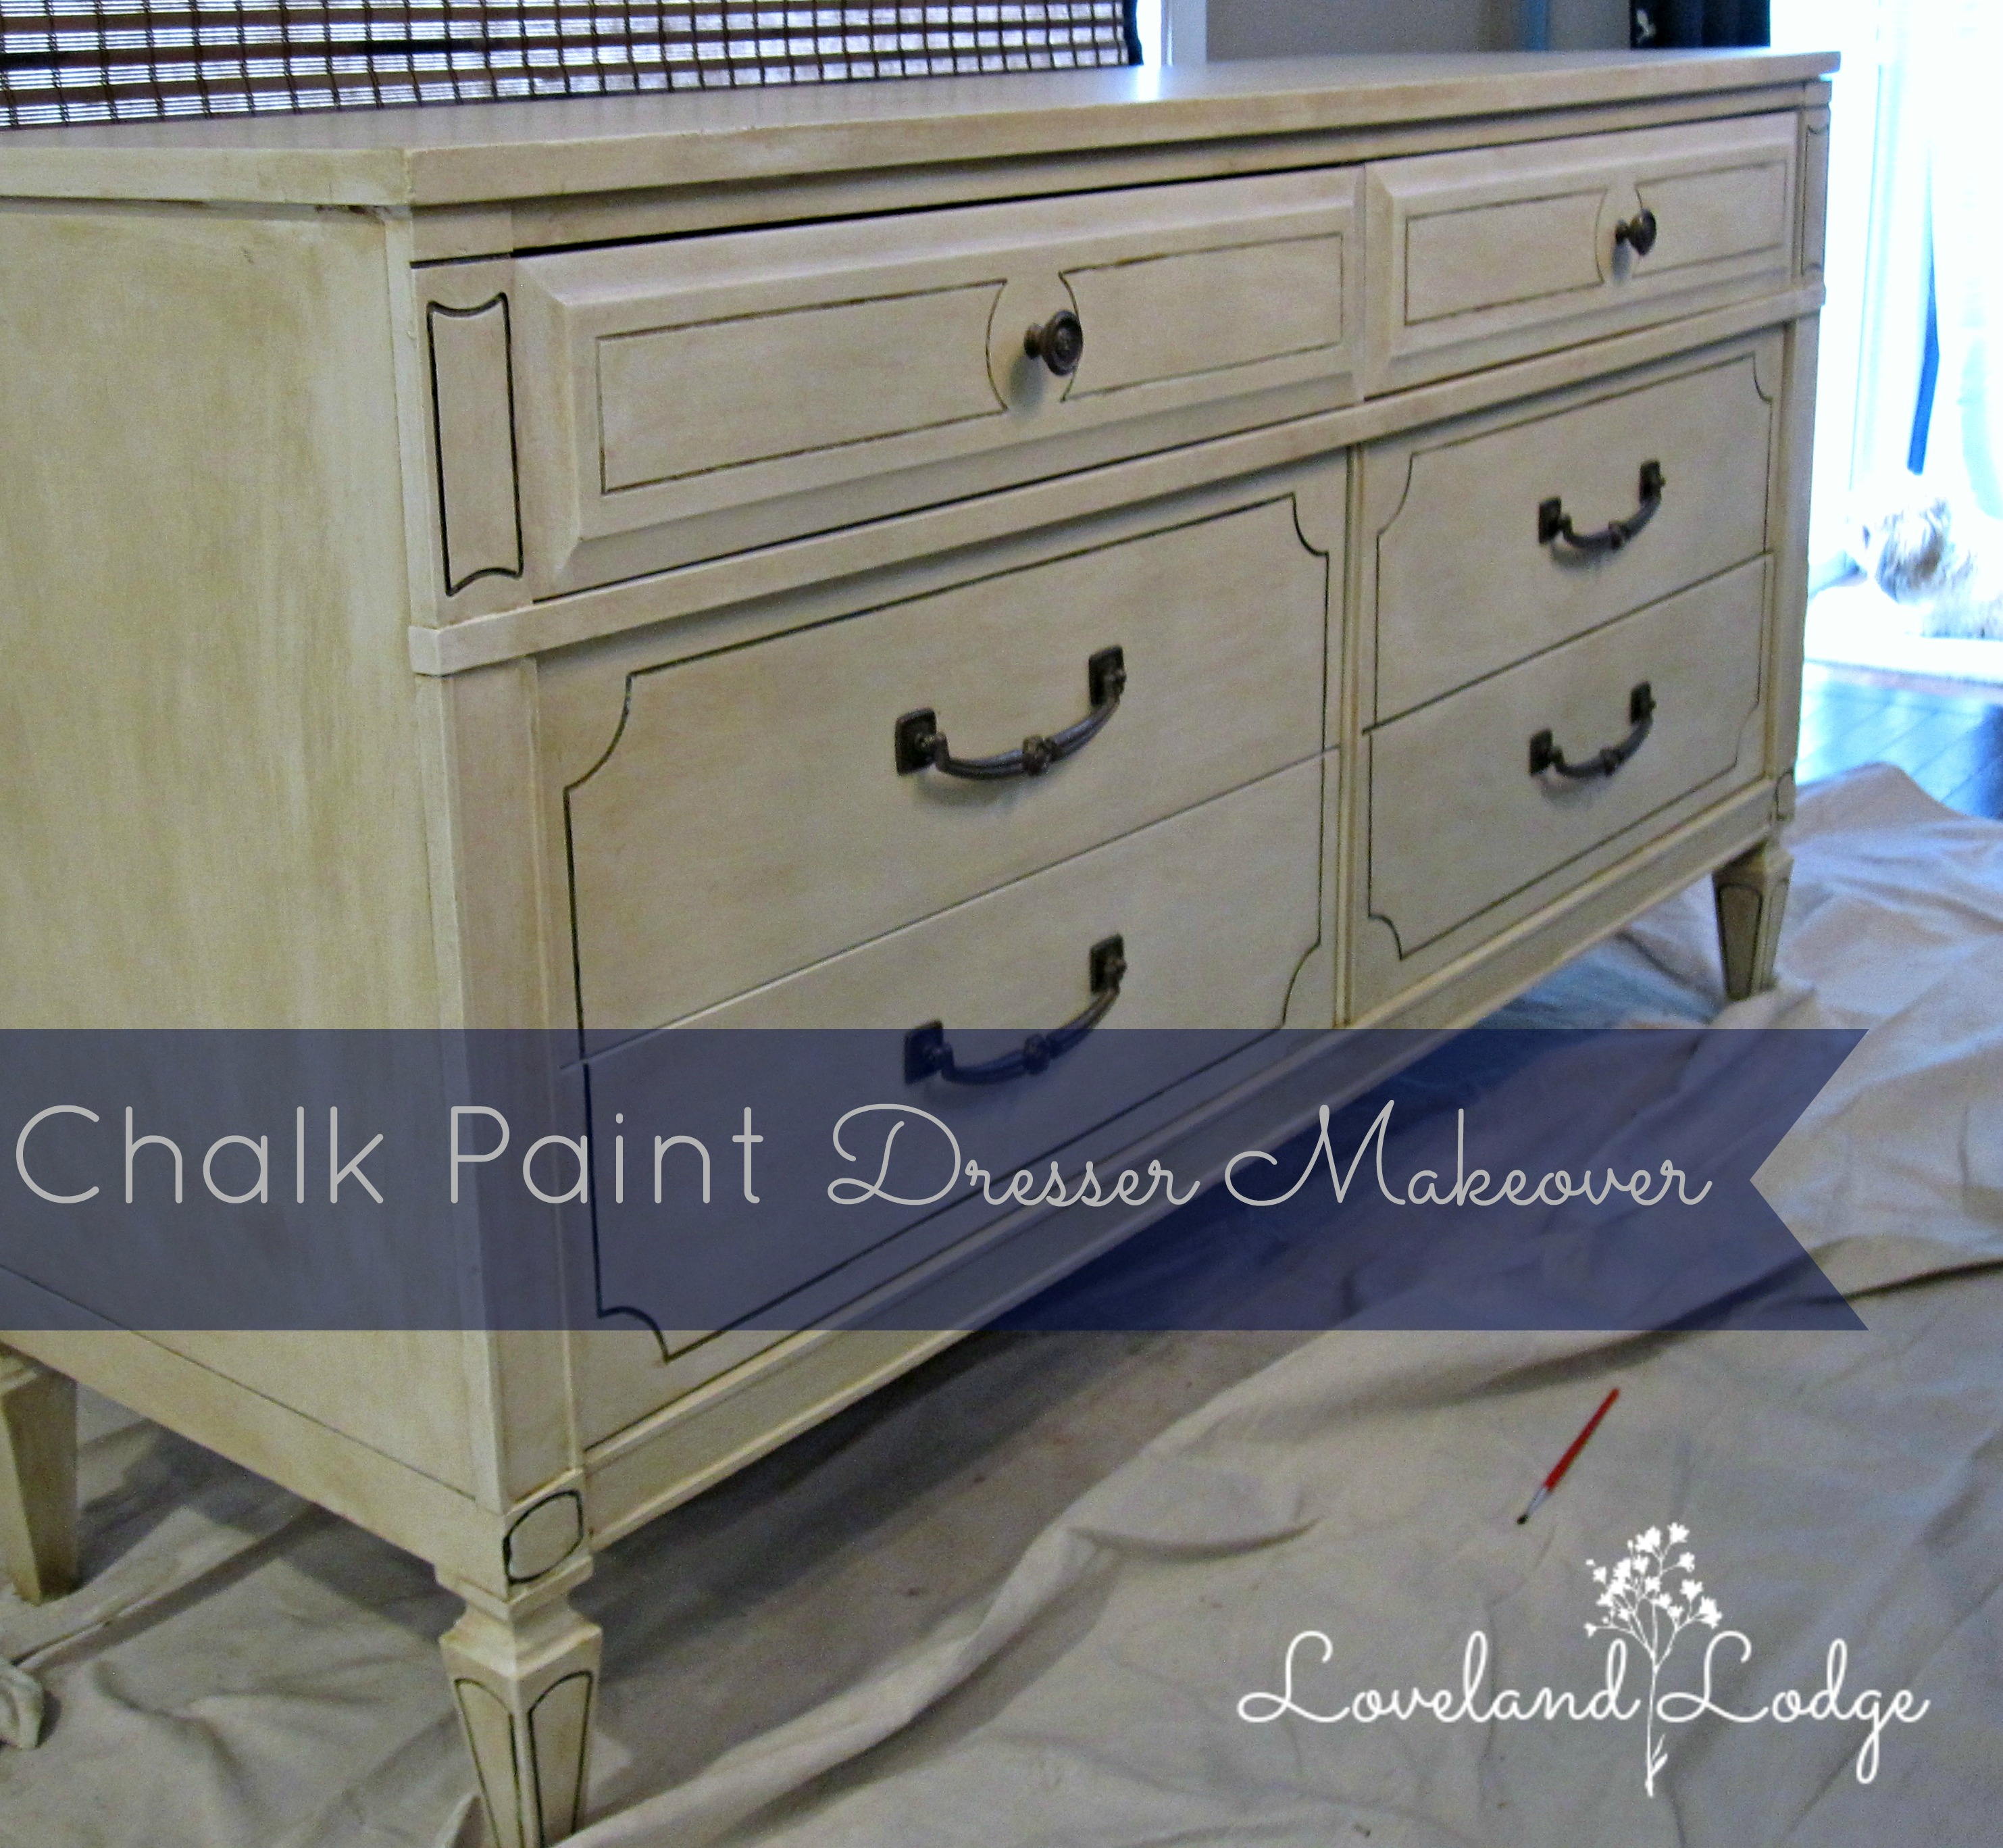 Chalk paint makeover dresser into tv stand loveland lodge - Before and after old dressers makeover with a little paint ...